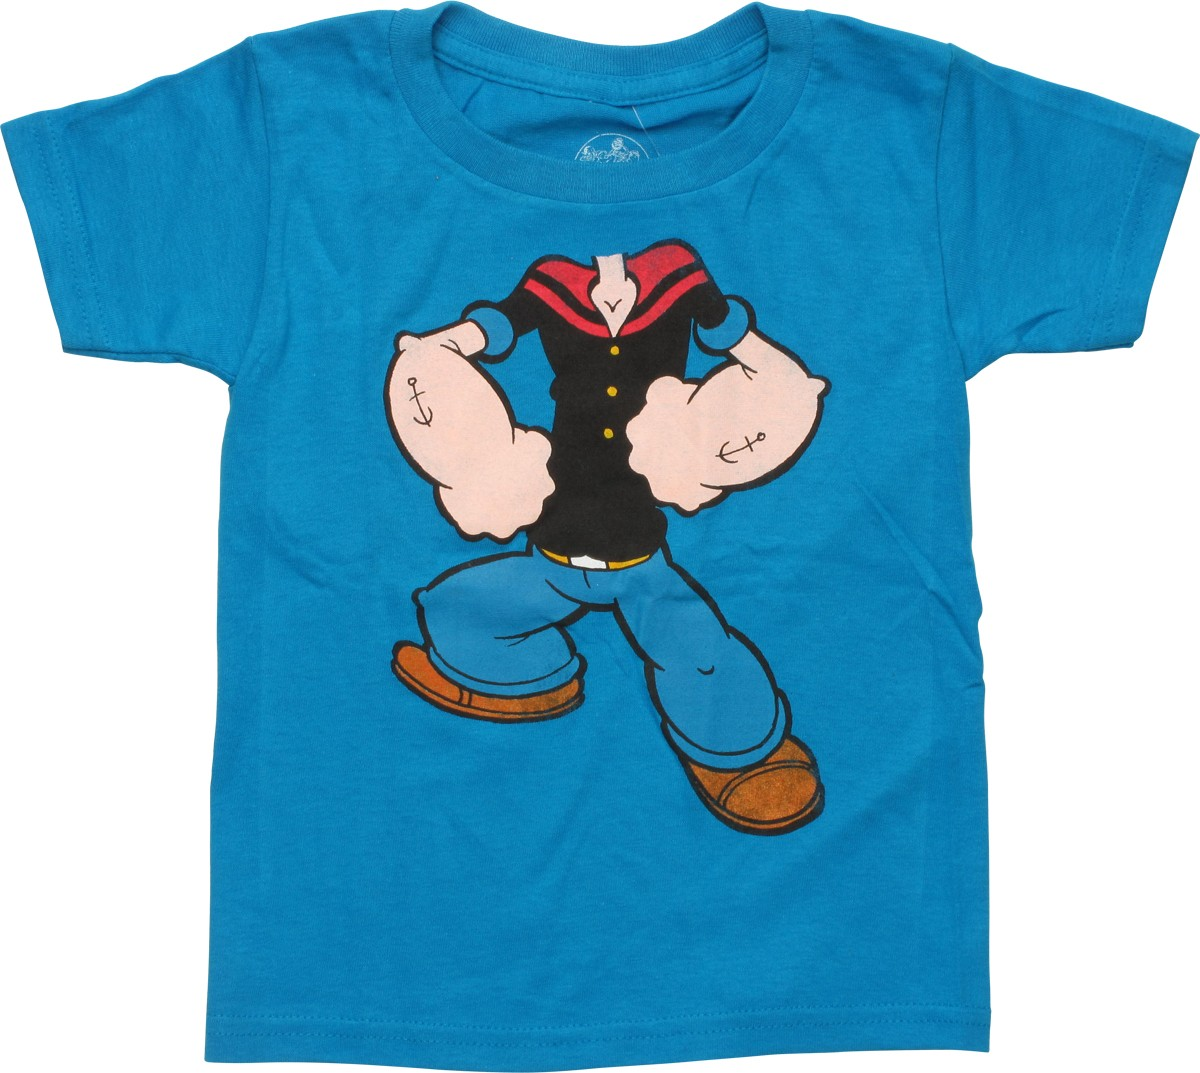 popeye body toddler t shirt. Black Bedroom Furniture Sets. Home Design Ideas